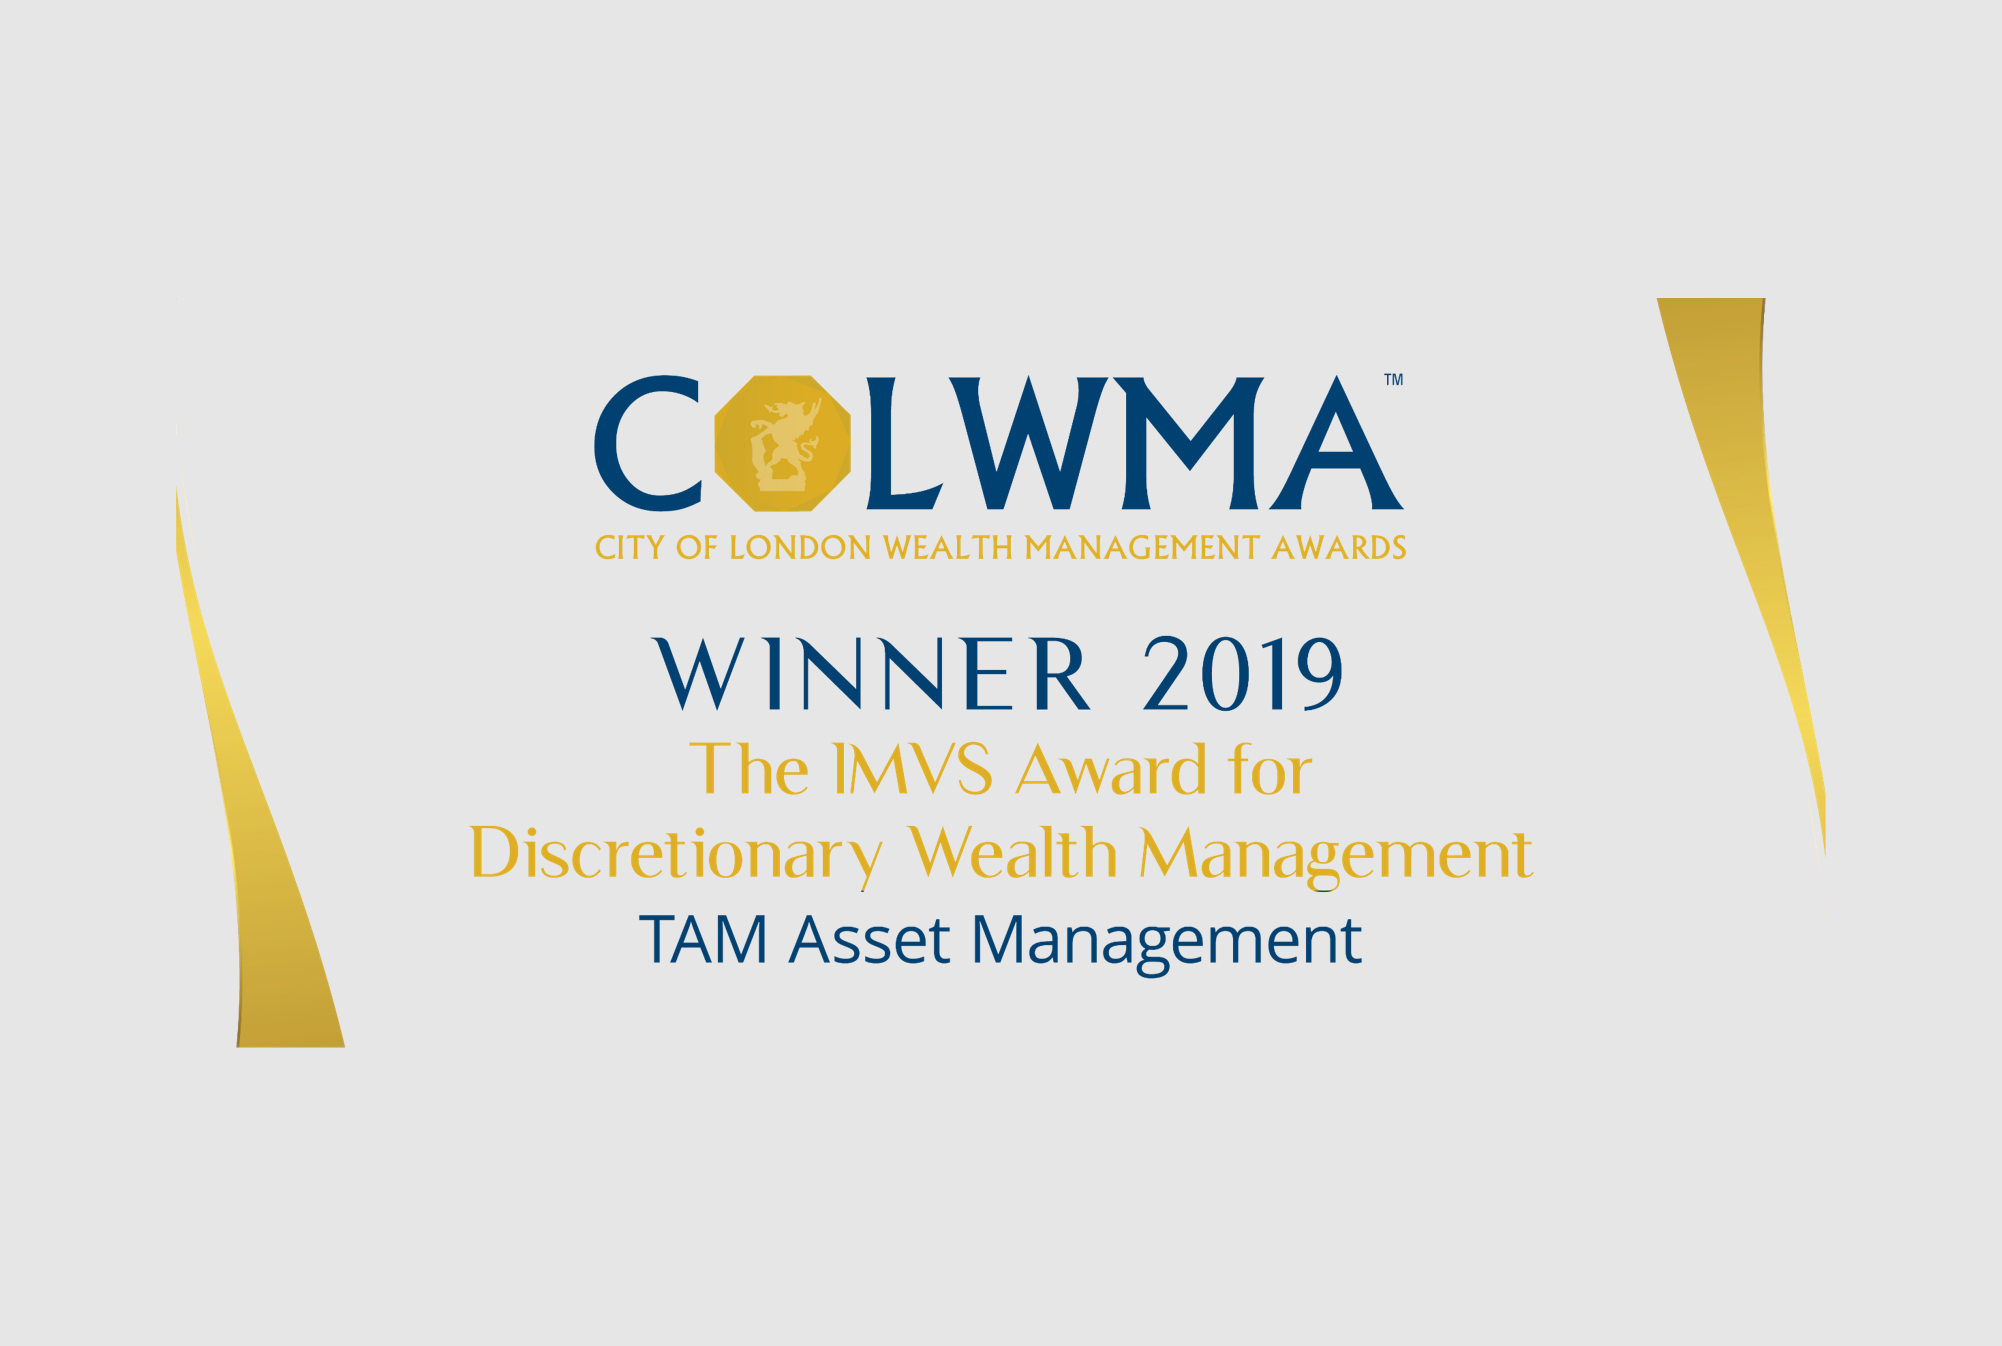 TAM awarded Best in Discretionary Wealth Management!